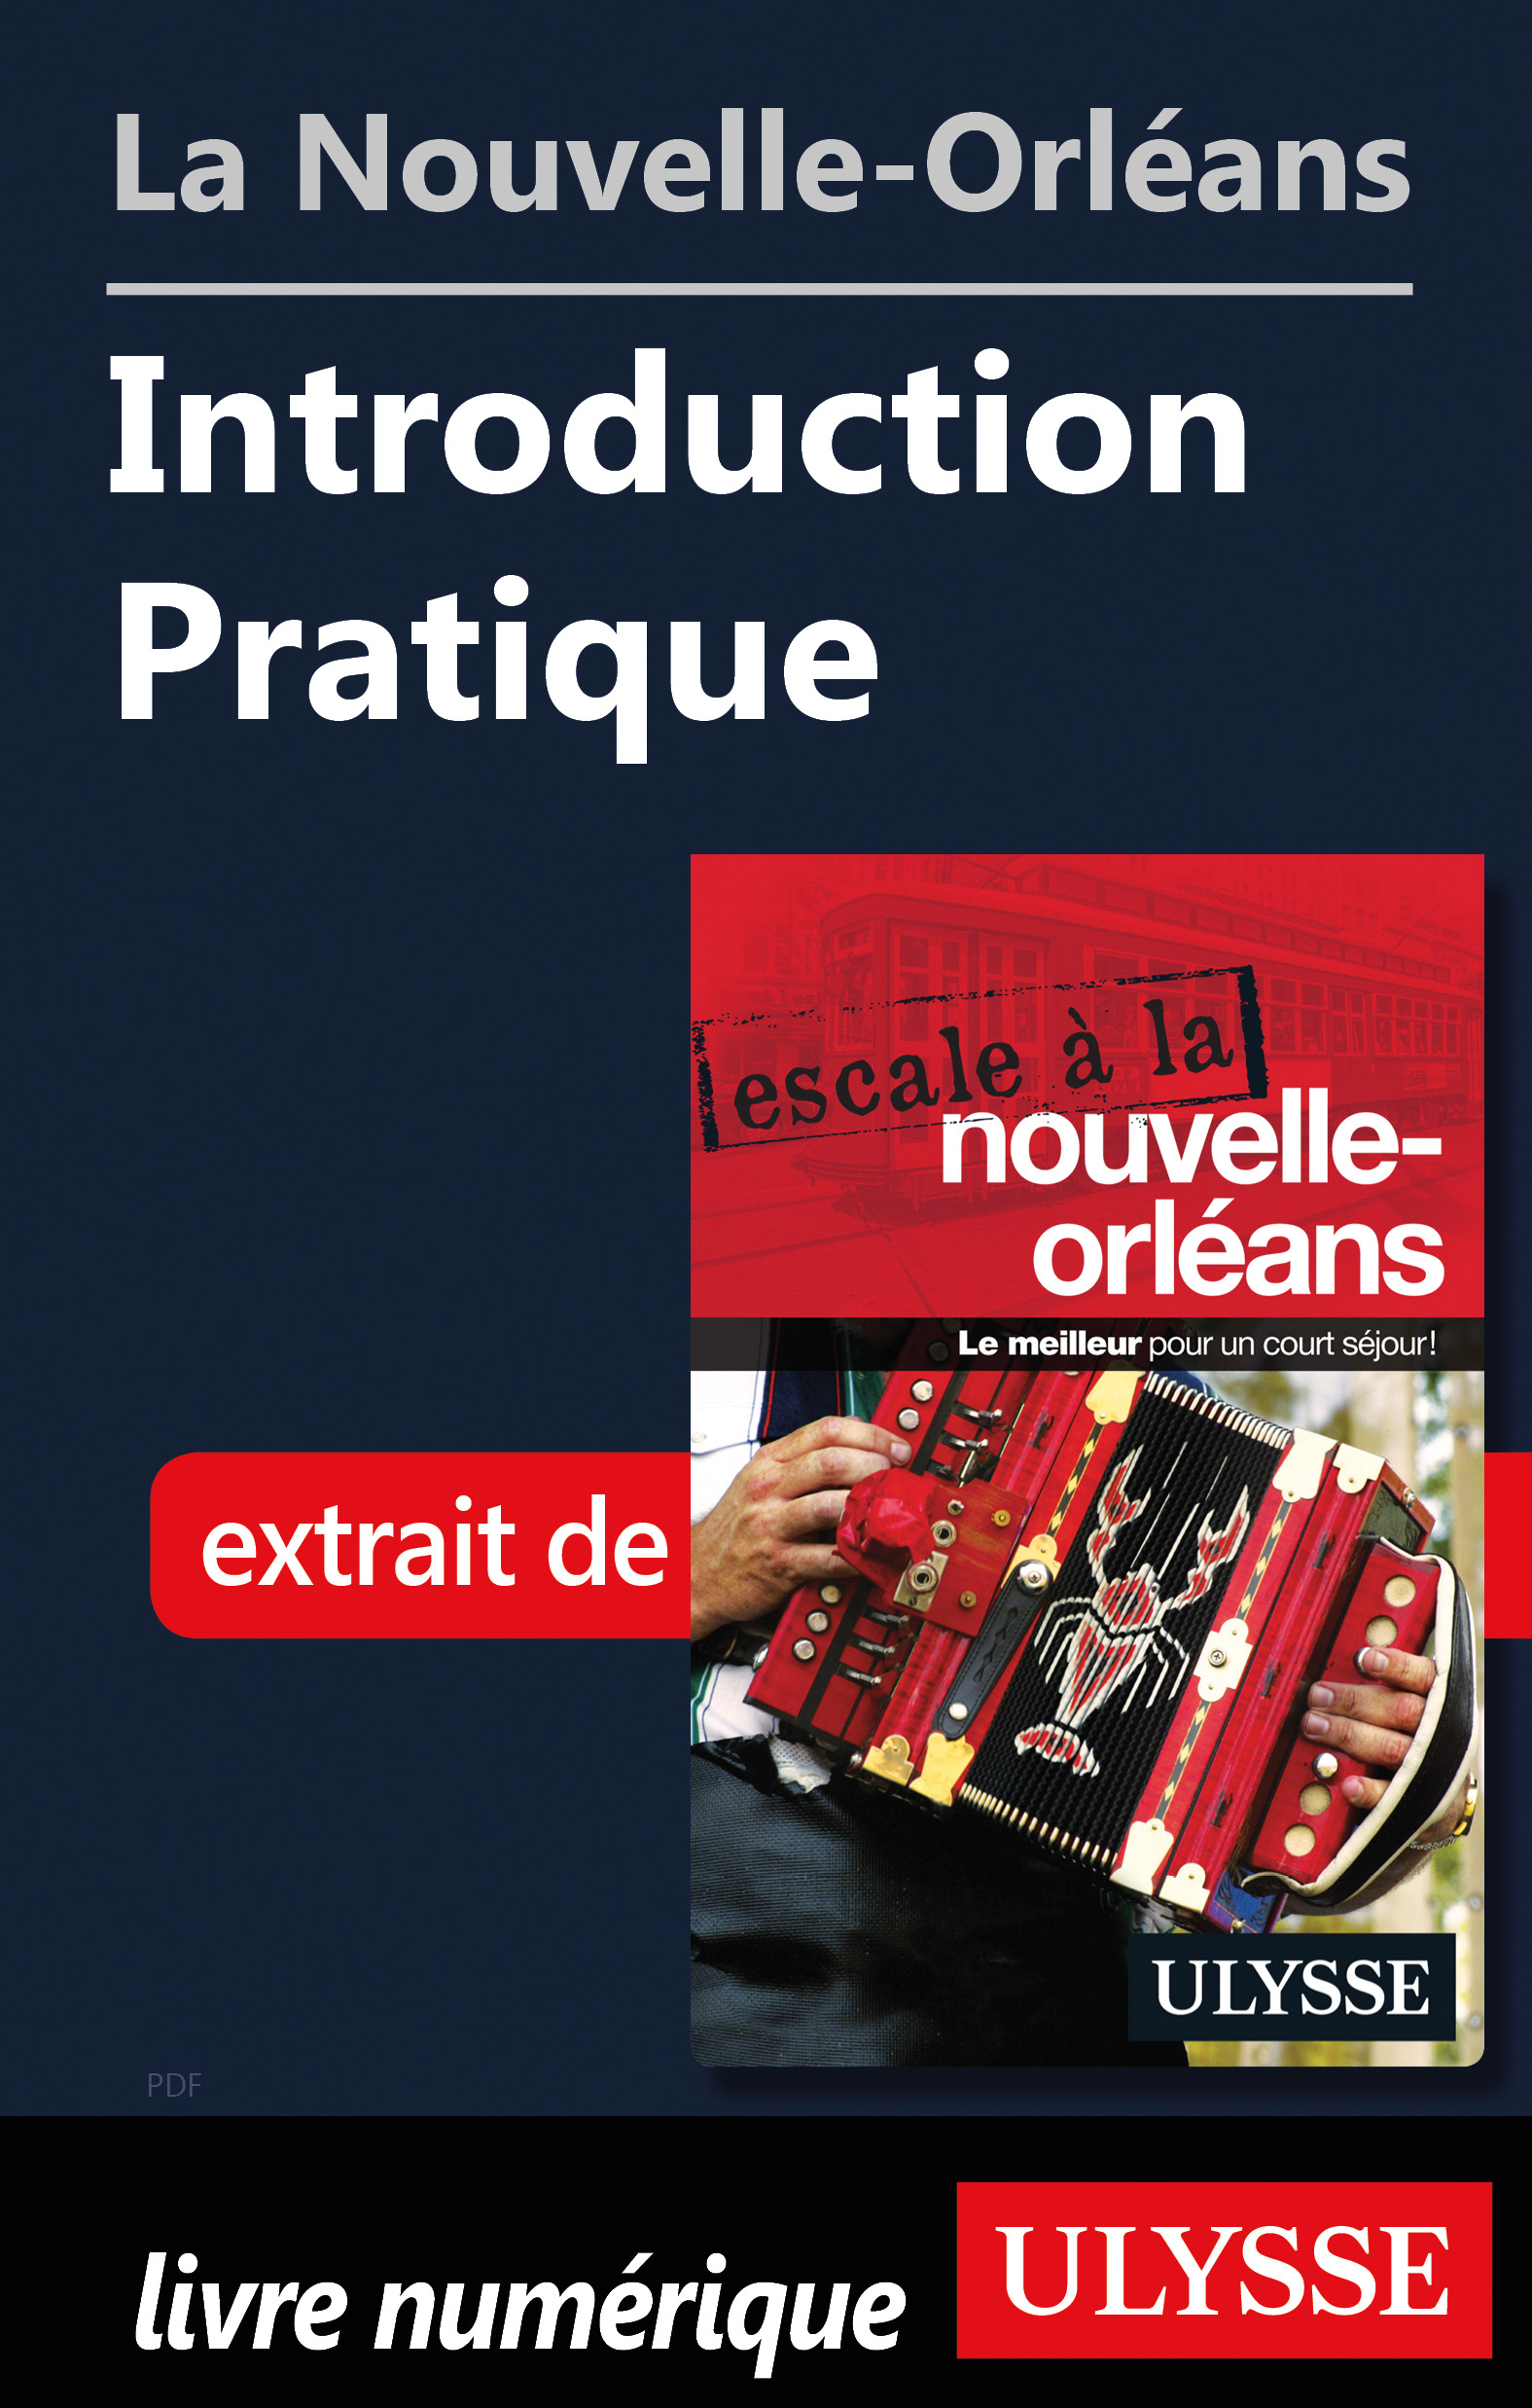 La Nouvelle-Orléans - Introduction Pratique